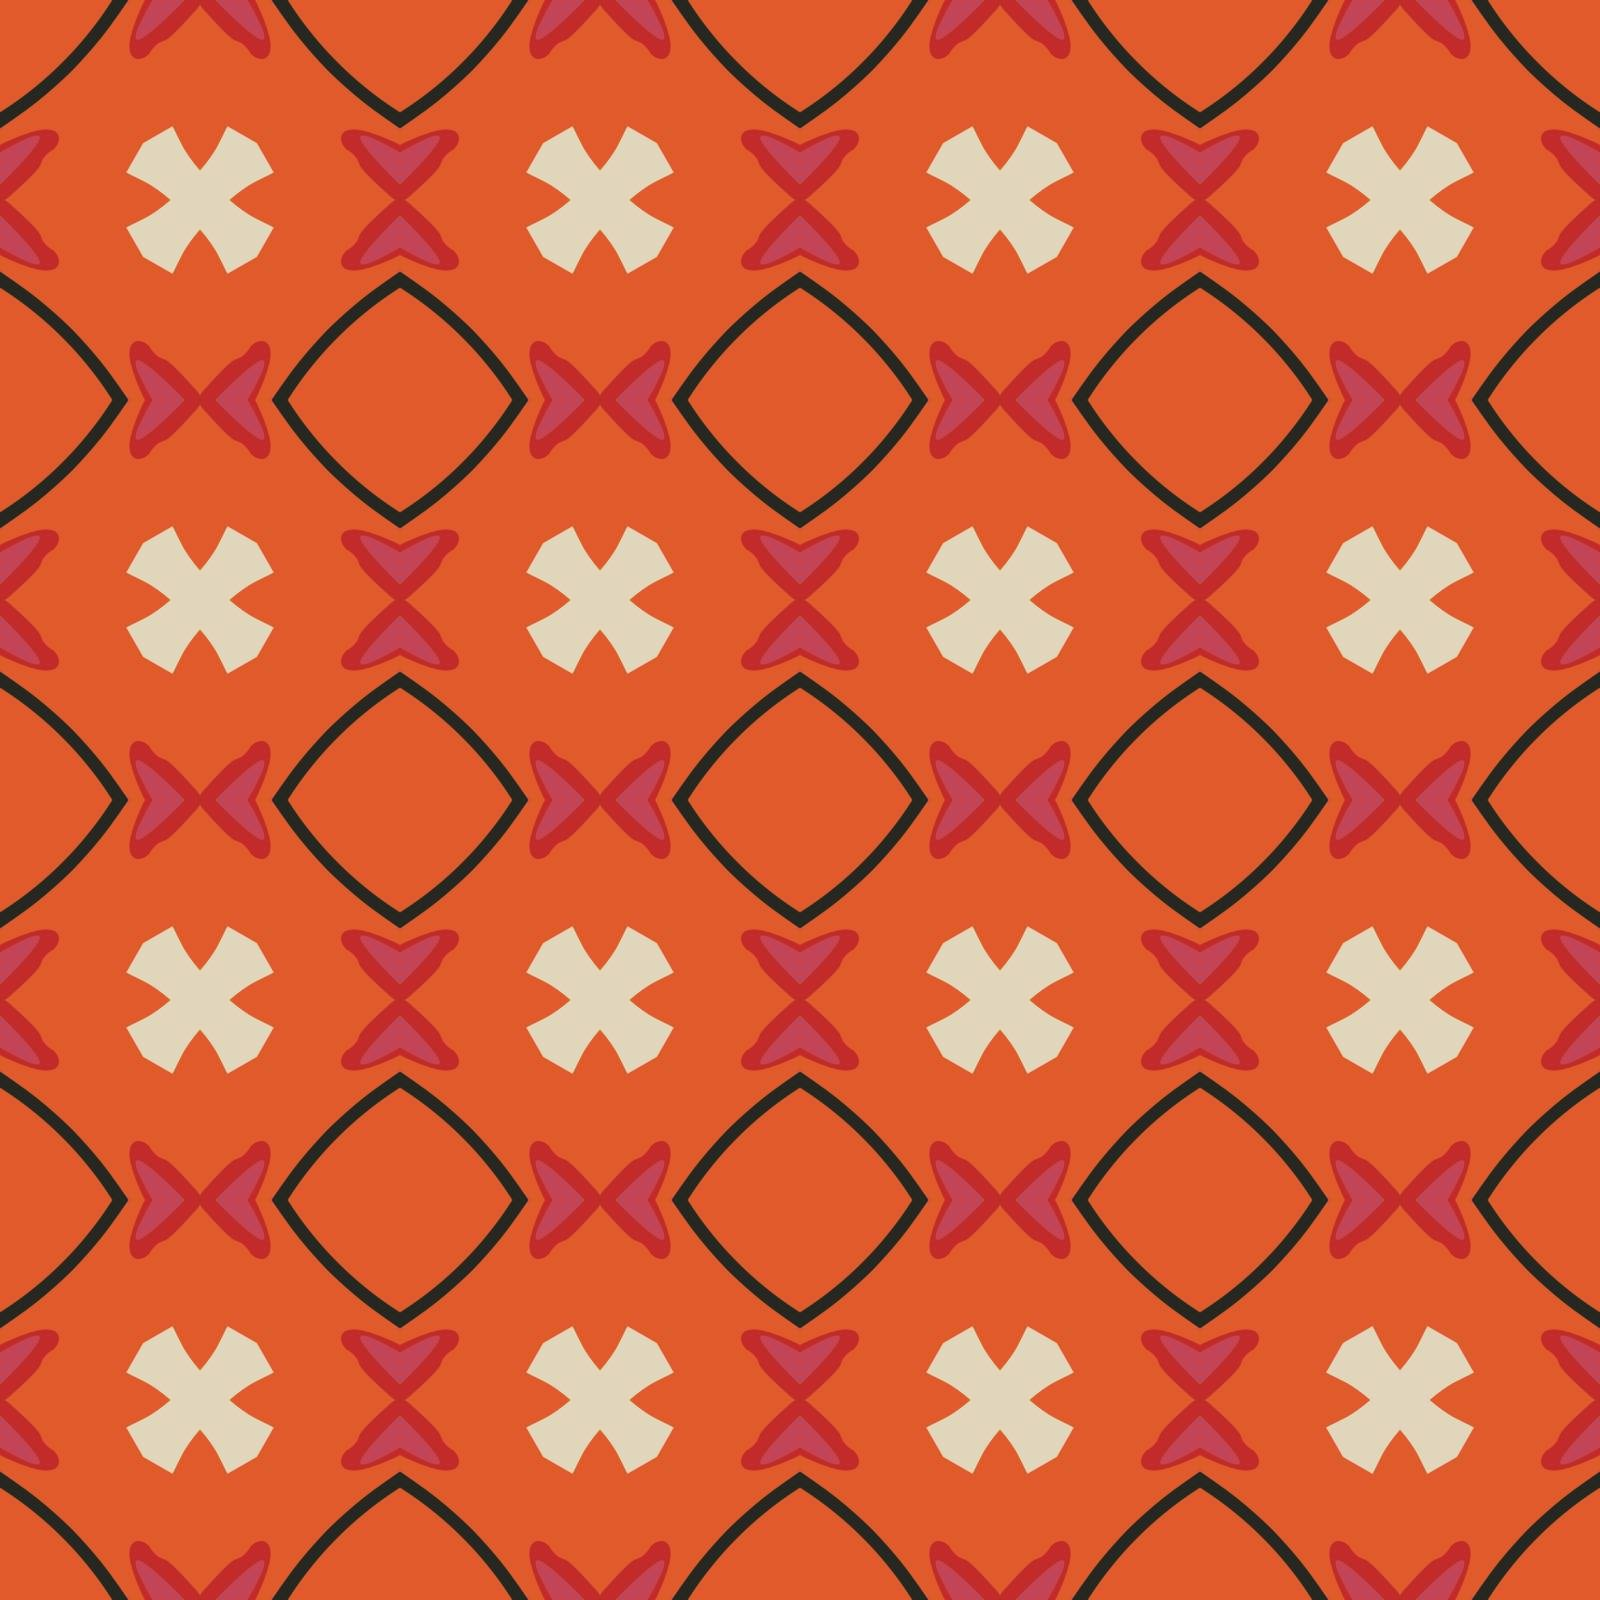 Seamless illustrated pattern made of abstract elements in beige,pink, orange and black